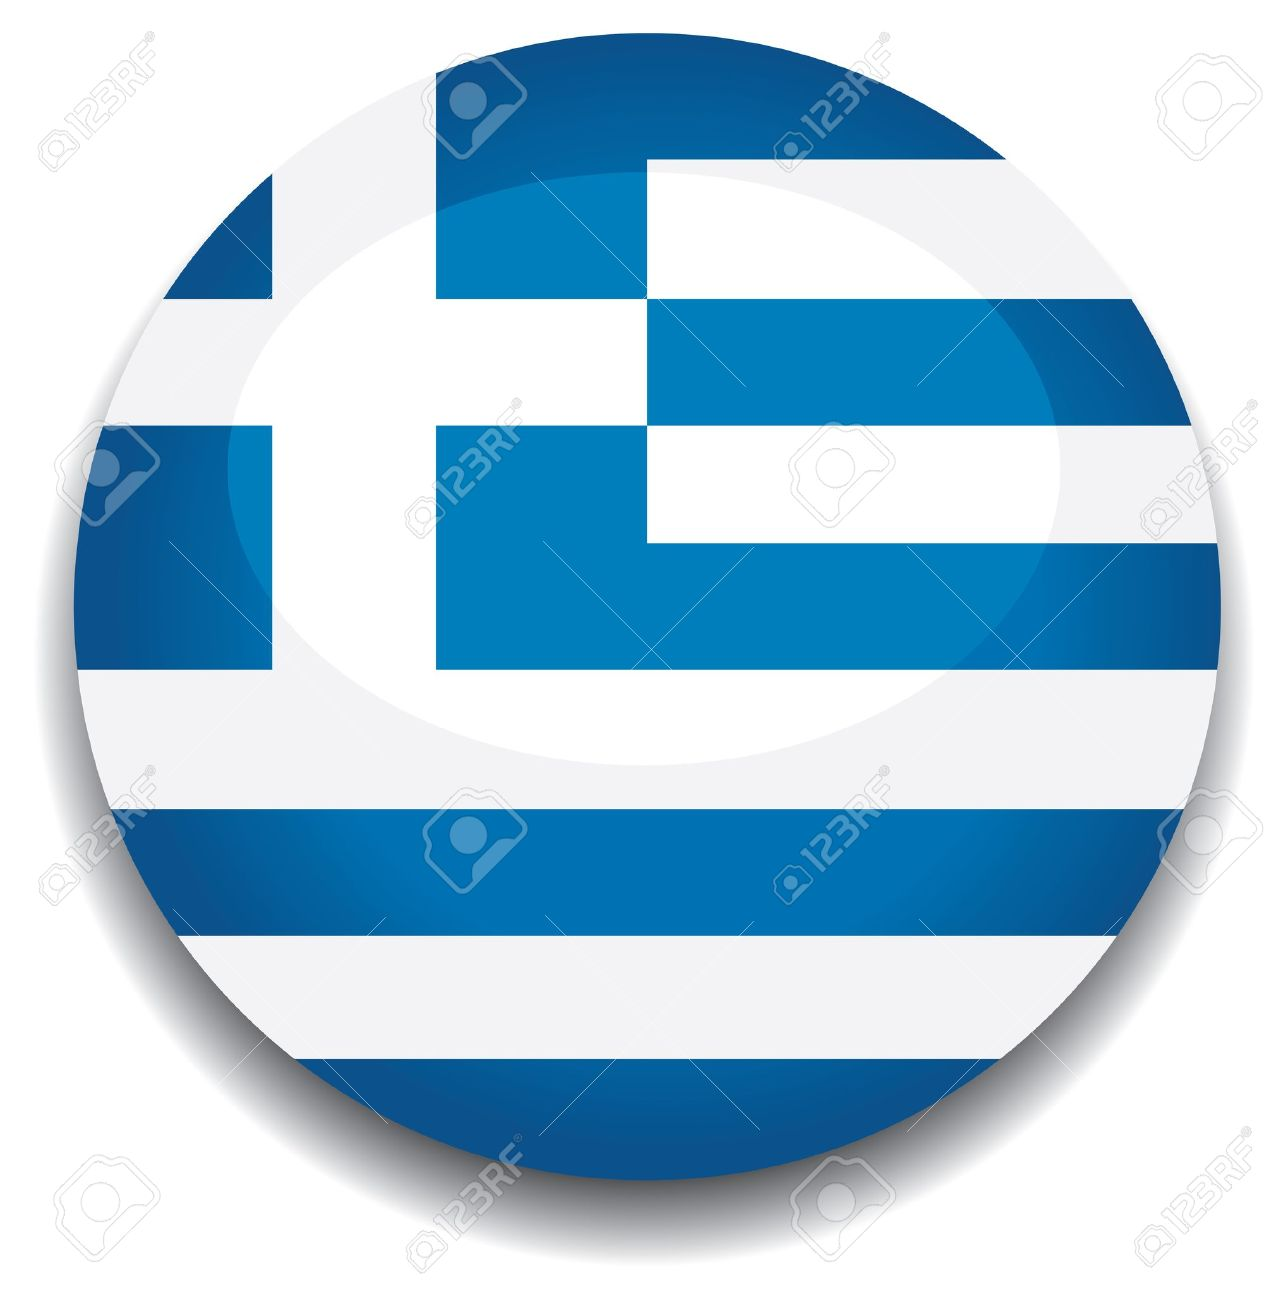 5 472 greek flag stock illustrations cliparts and royalty free